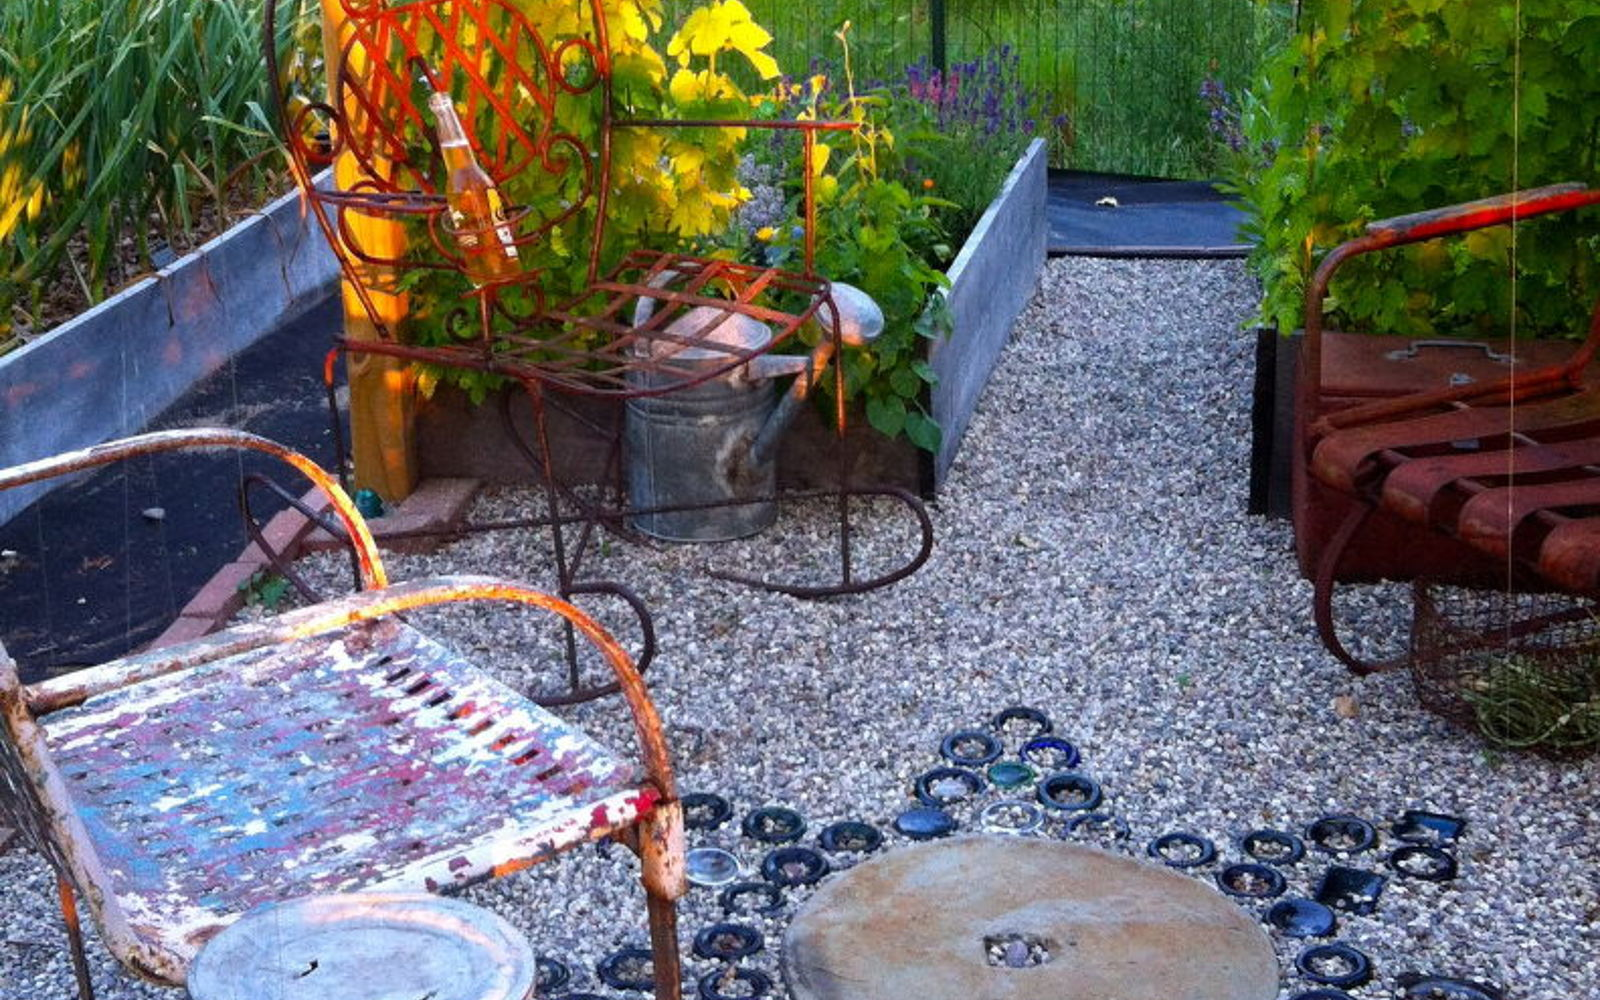 s wait they did what in their backyard , outdoor furniture, outdoor living, Bury bottles in the yard for free mosaic art